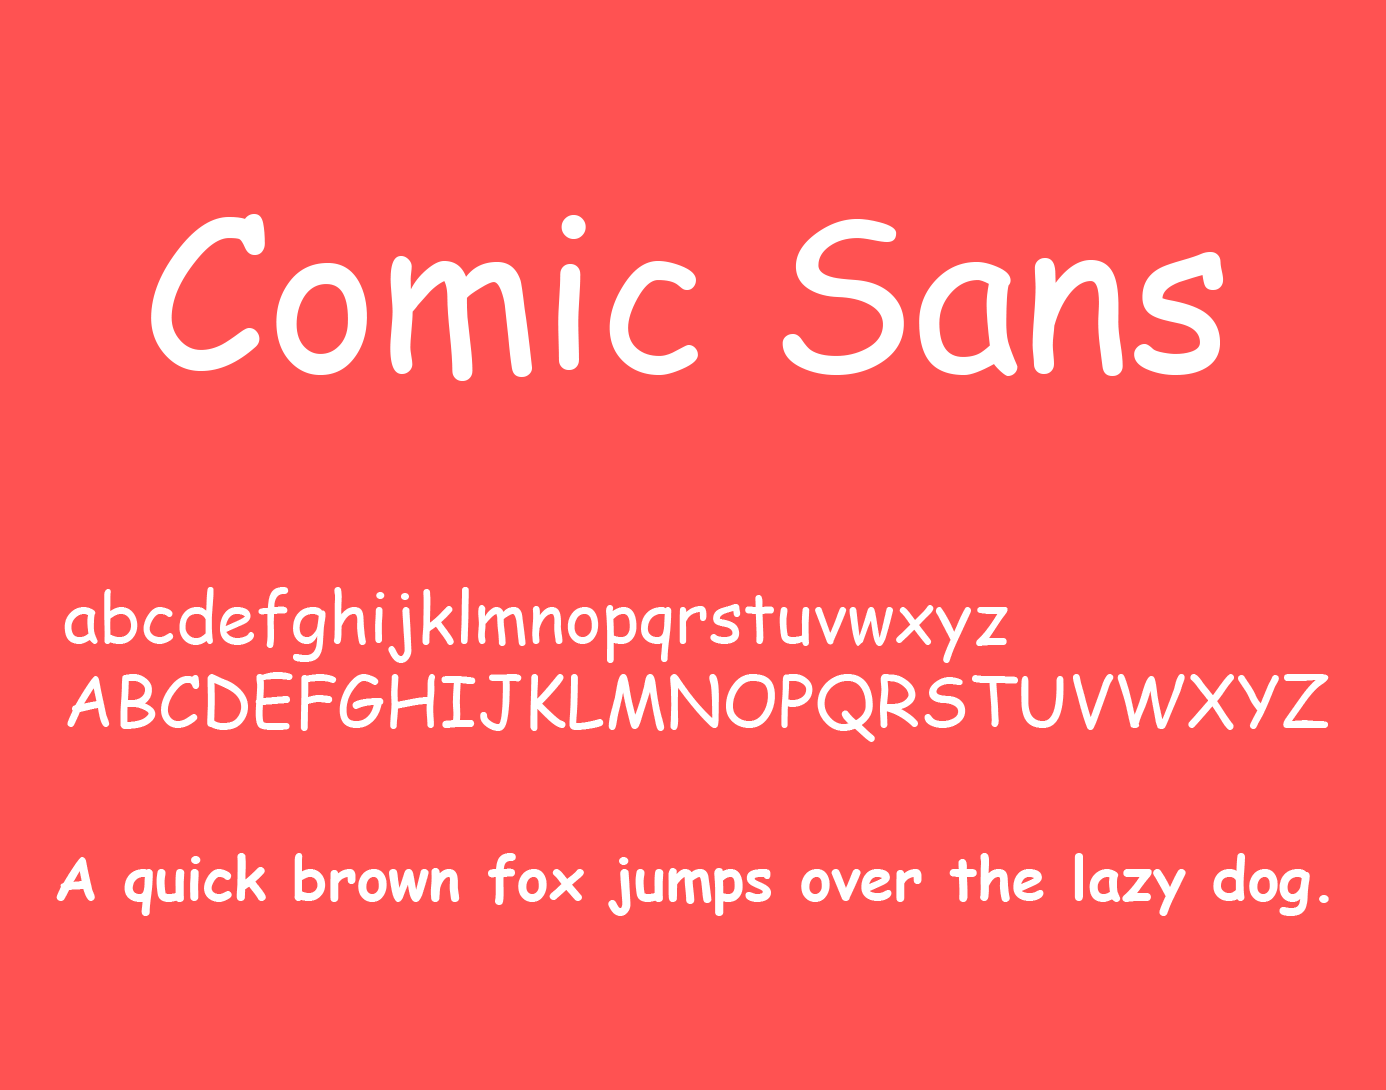 https://fontclarity.com/wp-content/uploads/2019/09/comic-sans-font-download-0.png Free Download